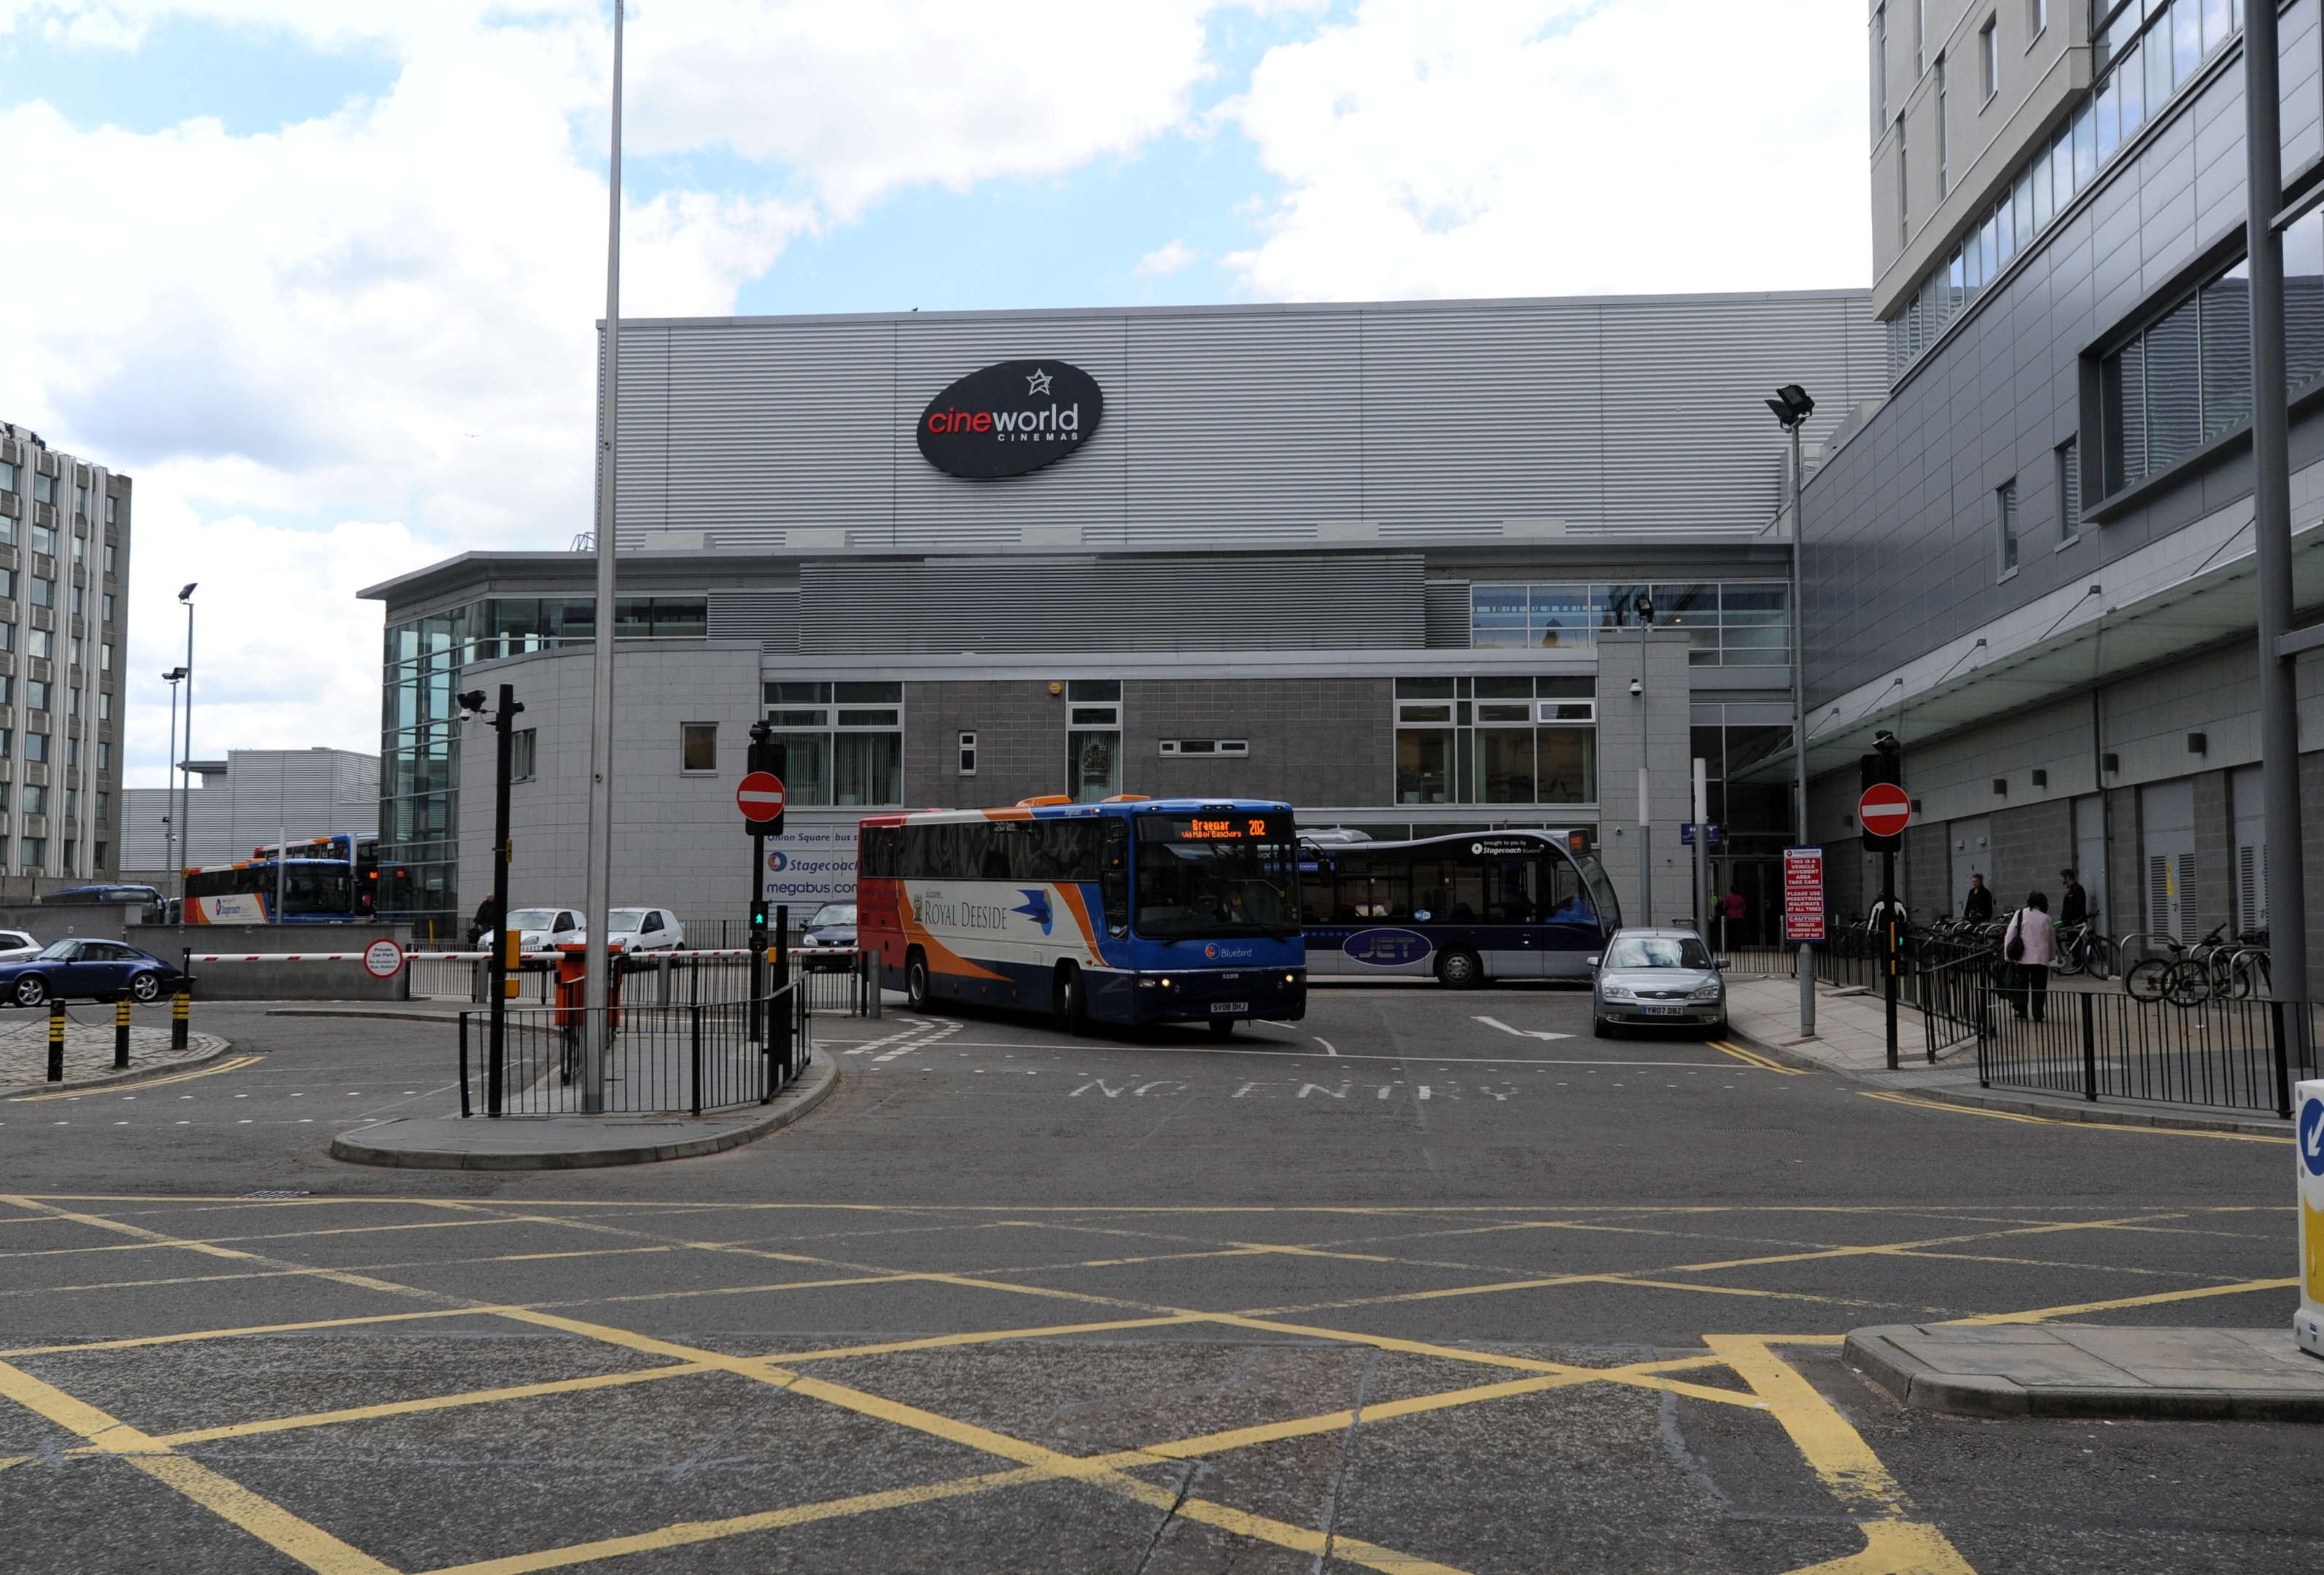 Police were called to a disturbance at Aberdeen bus station this afternoon.